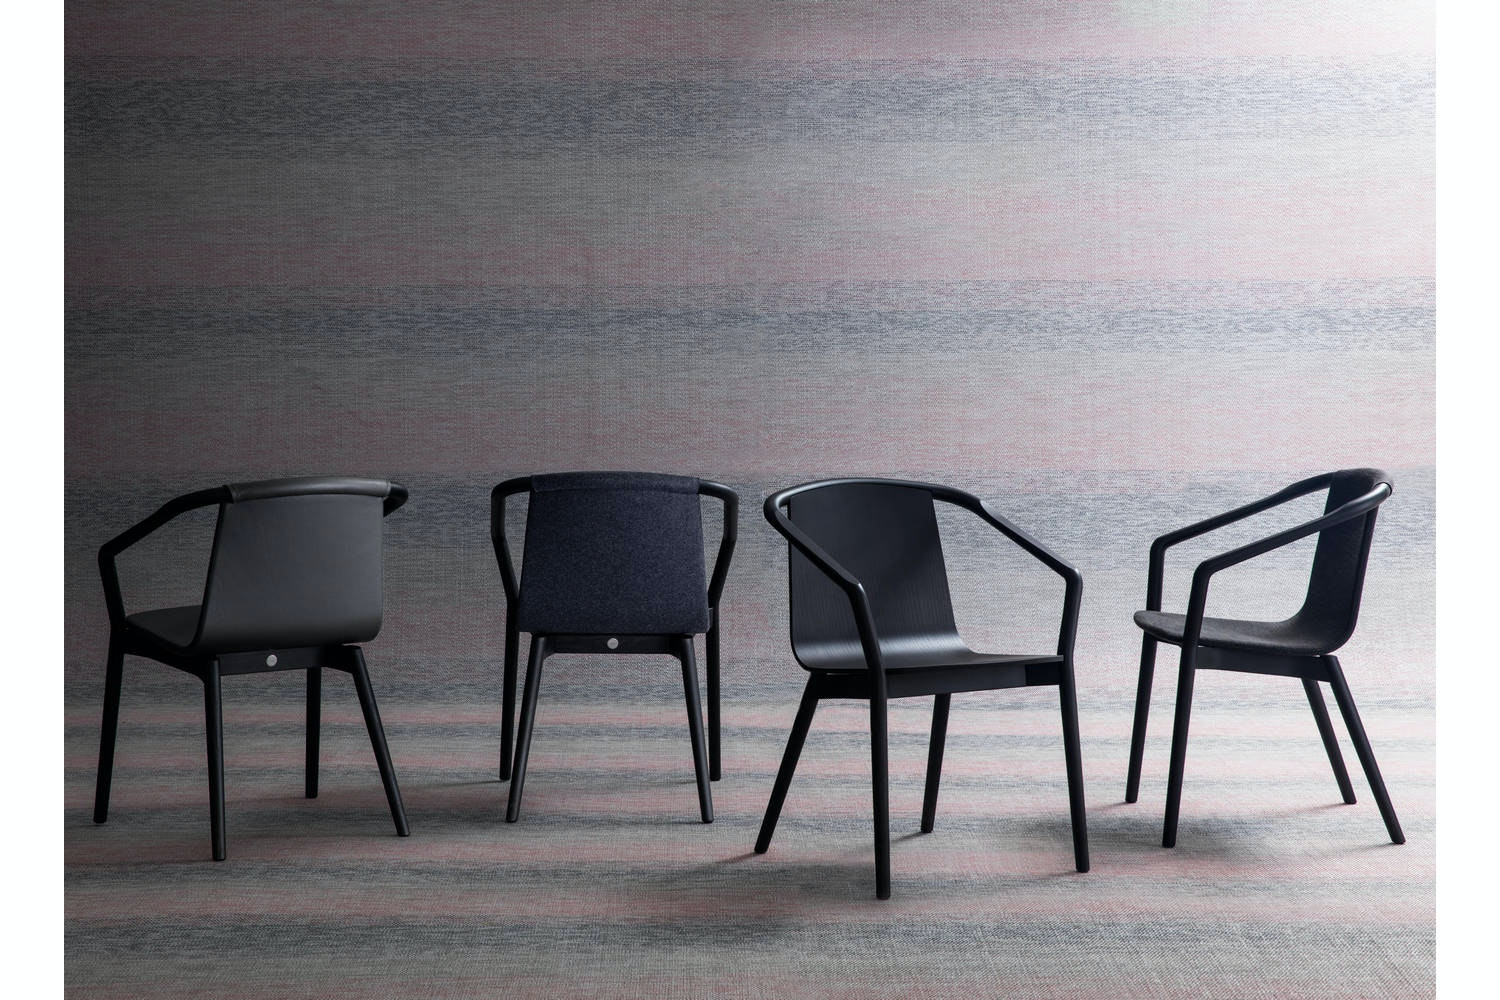 Thomas Chair By Metrica For SP01. Share